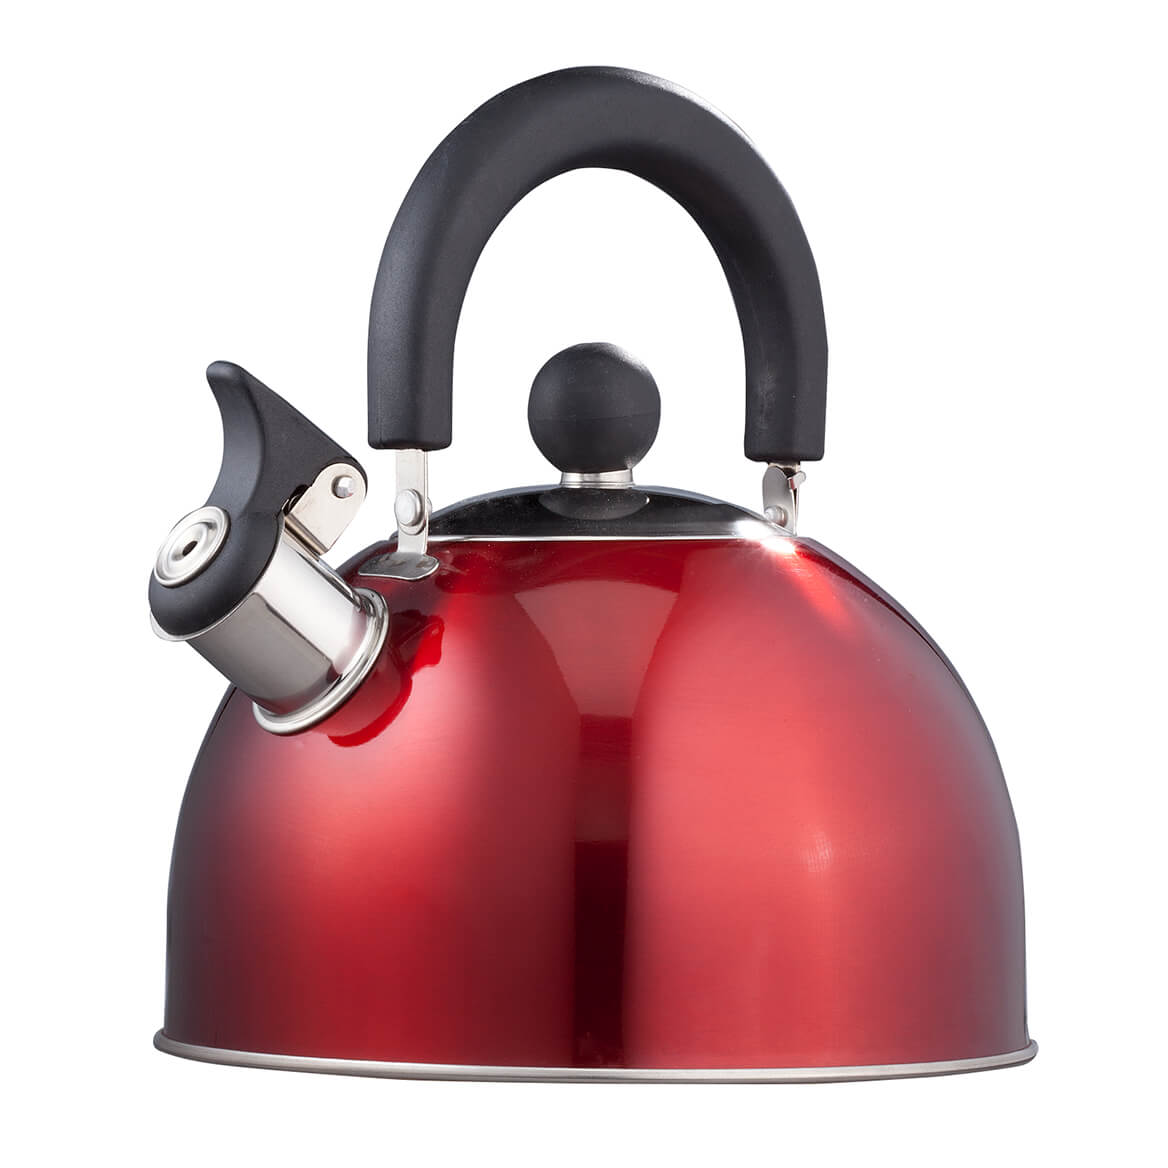 Red Whistling Tea Kettle by Home-Style Kitchen™-353543